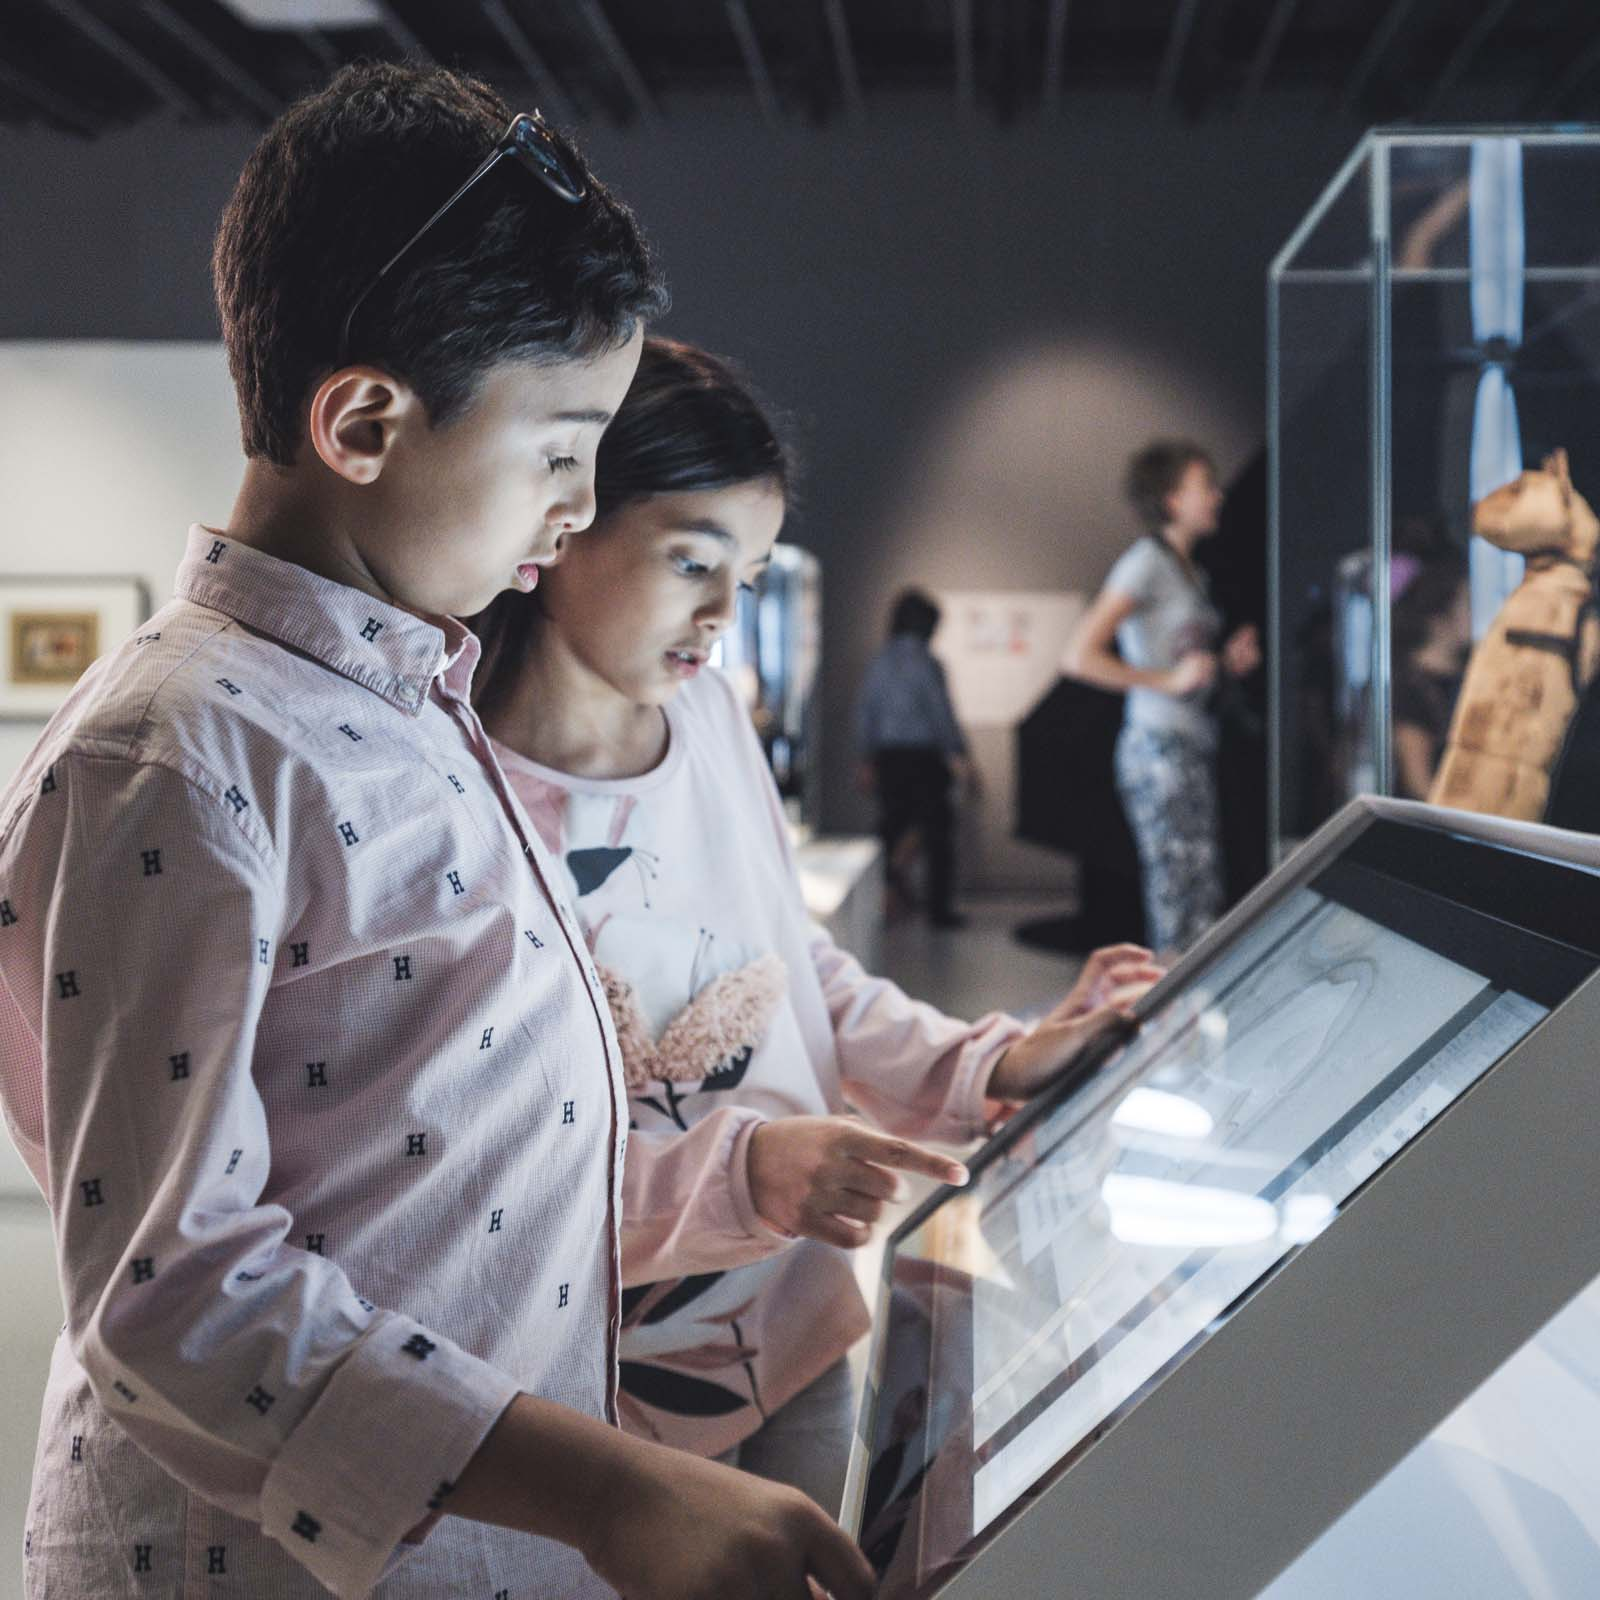 Creating a Children's Museum, Exhibition Animals, between real and imaginary, Visitor experience, Learning, innovative mediation tools